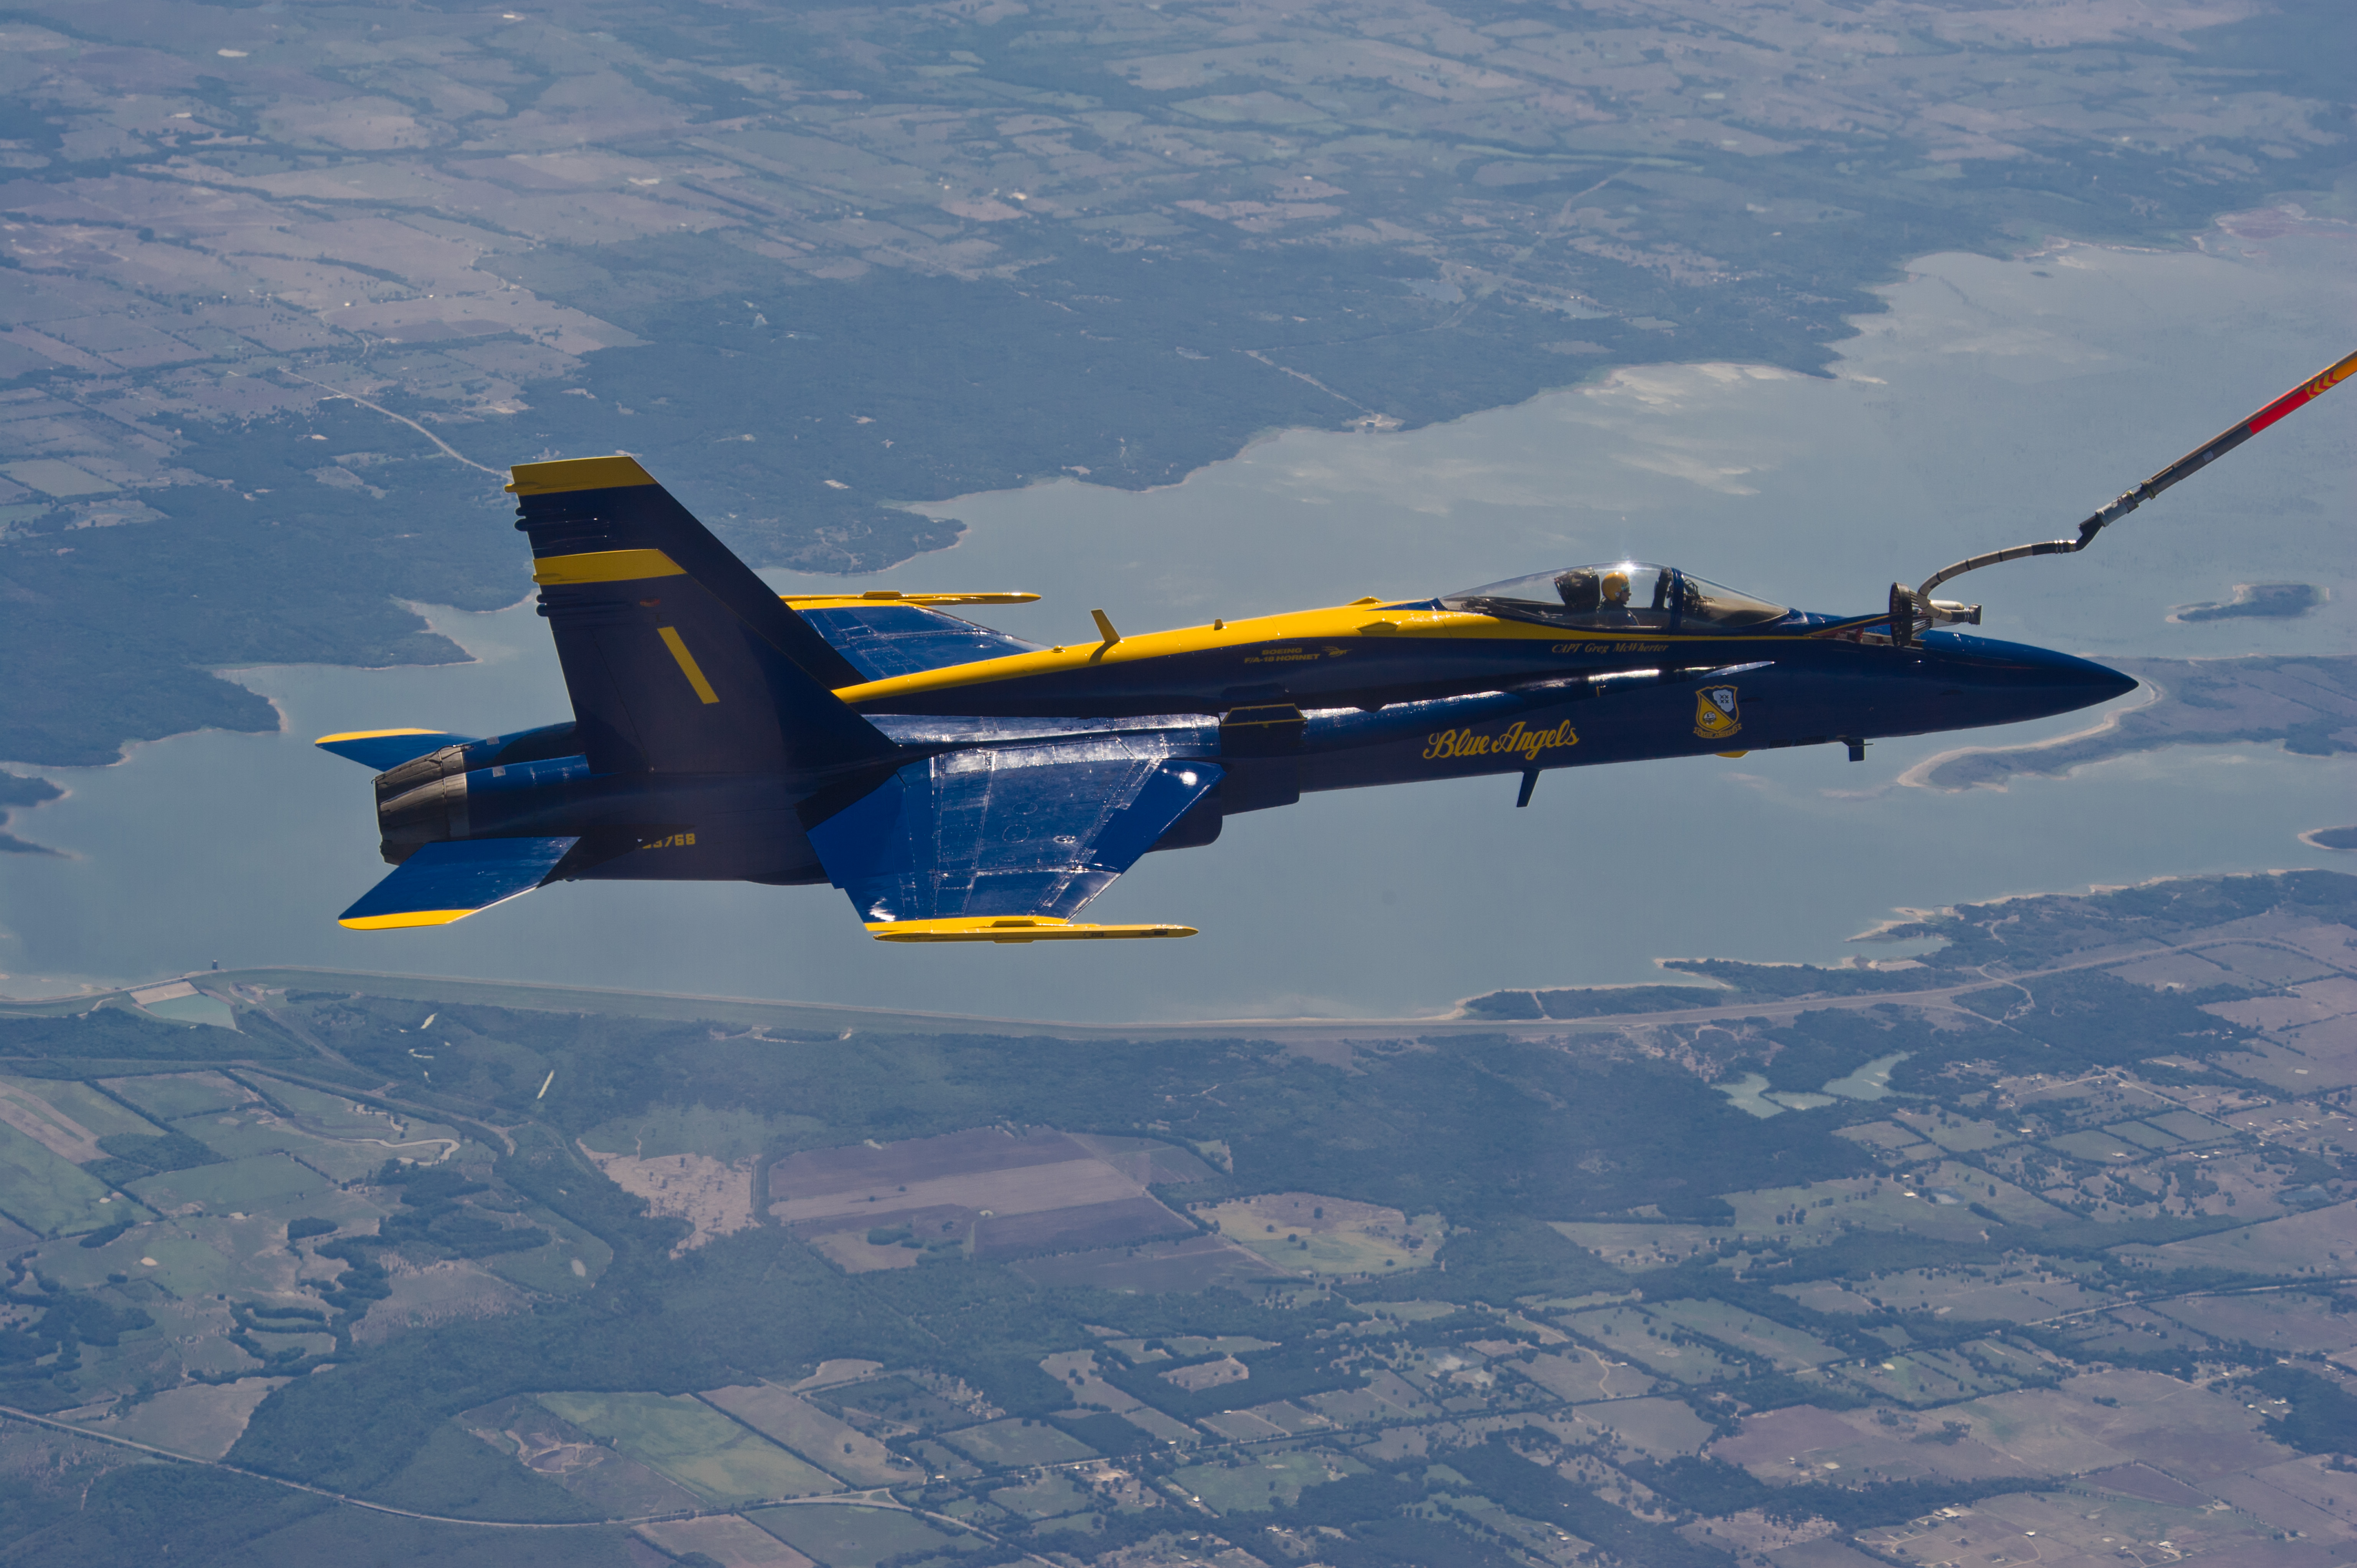 file:flickr - official u.s. navy imagery - blue angel f-a-18 hornet